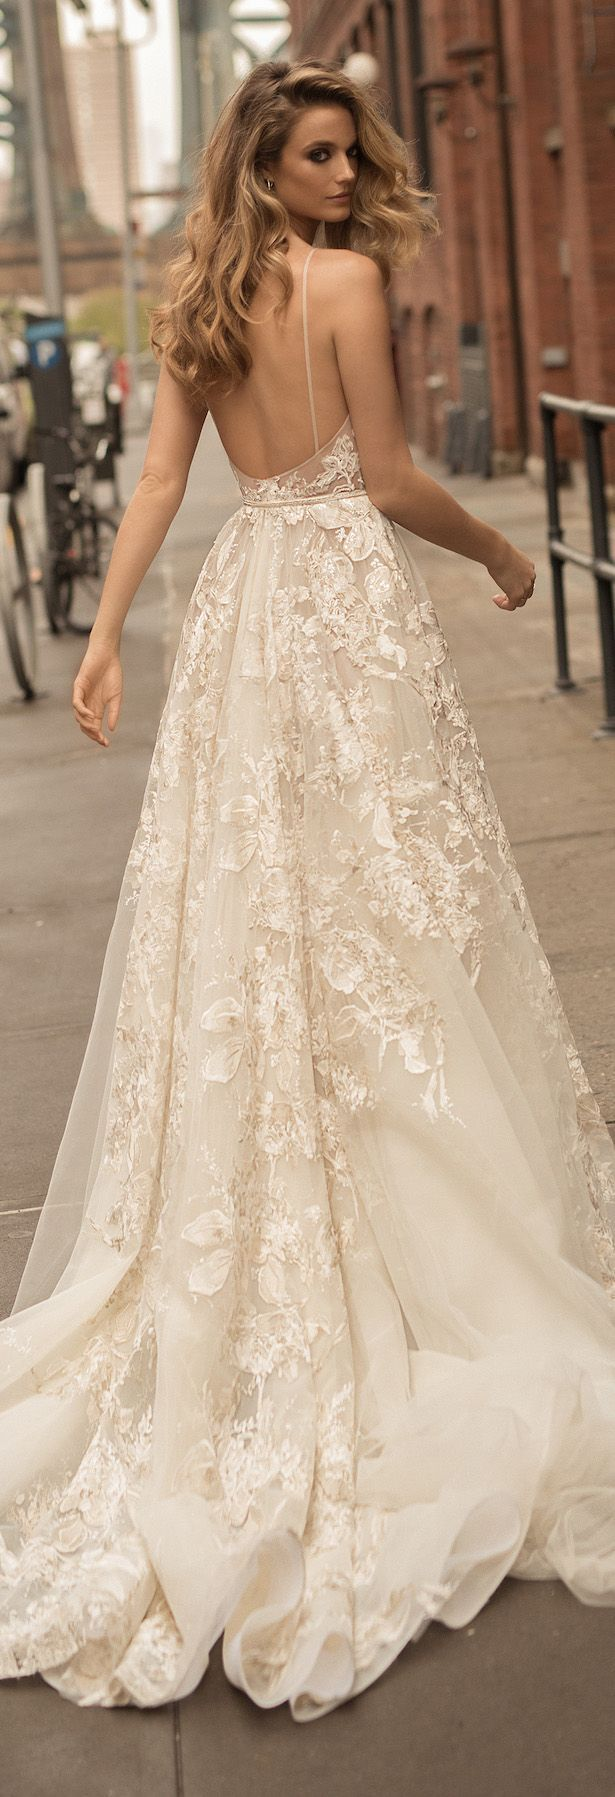 Bridal Wedding Dress // Style // Moda // Trends // Fashion // Bride // Wedding Dress // Chic // Beauty // Berta Wedding Dress Collection Spring 2018